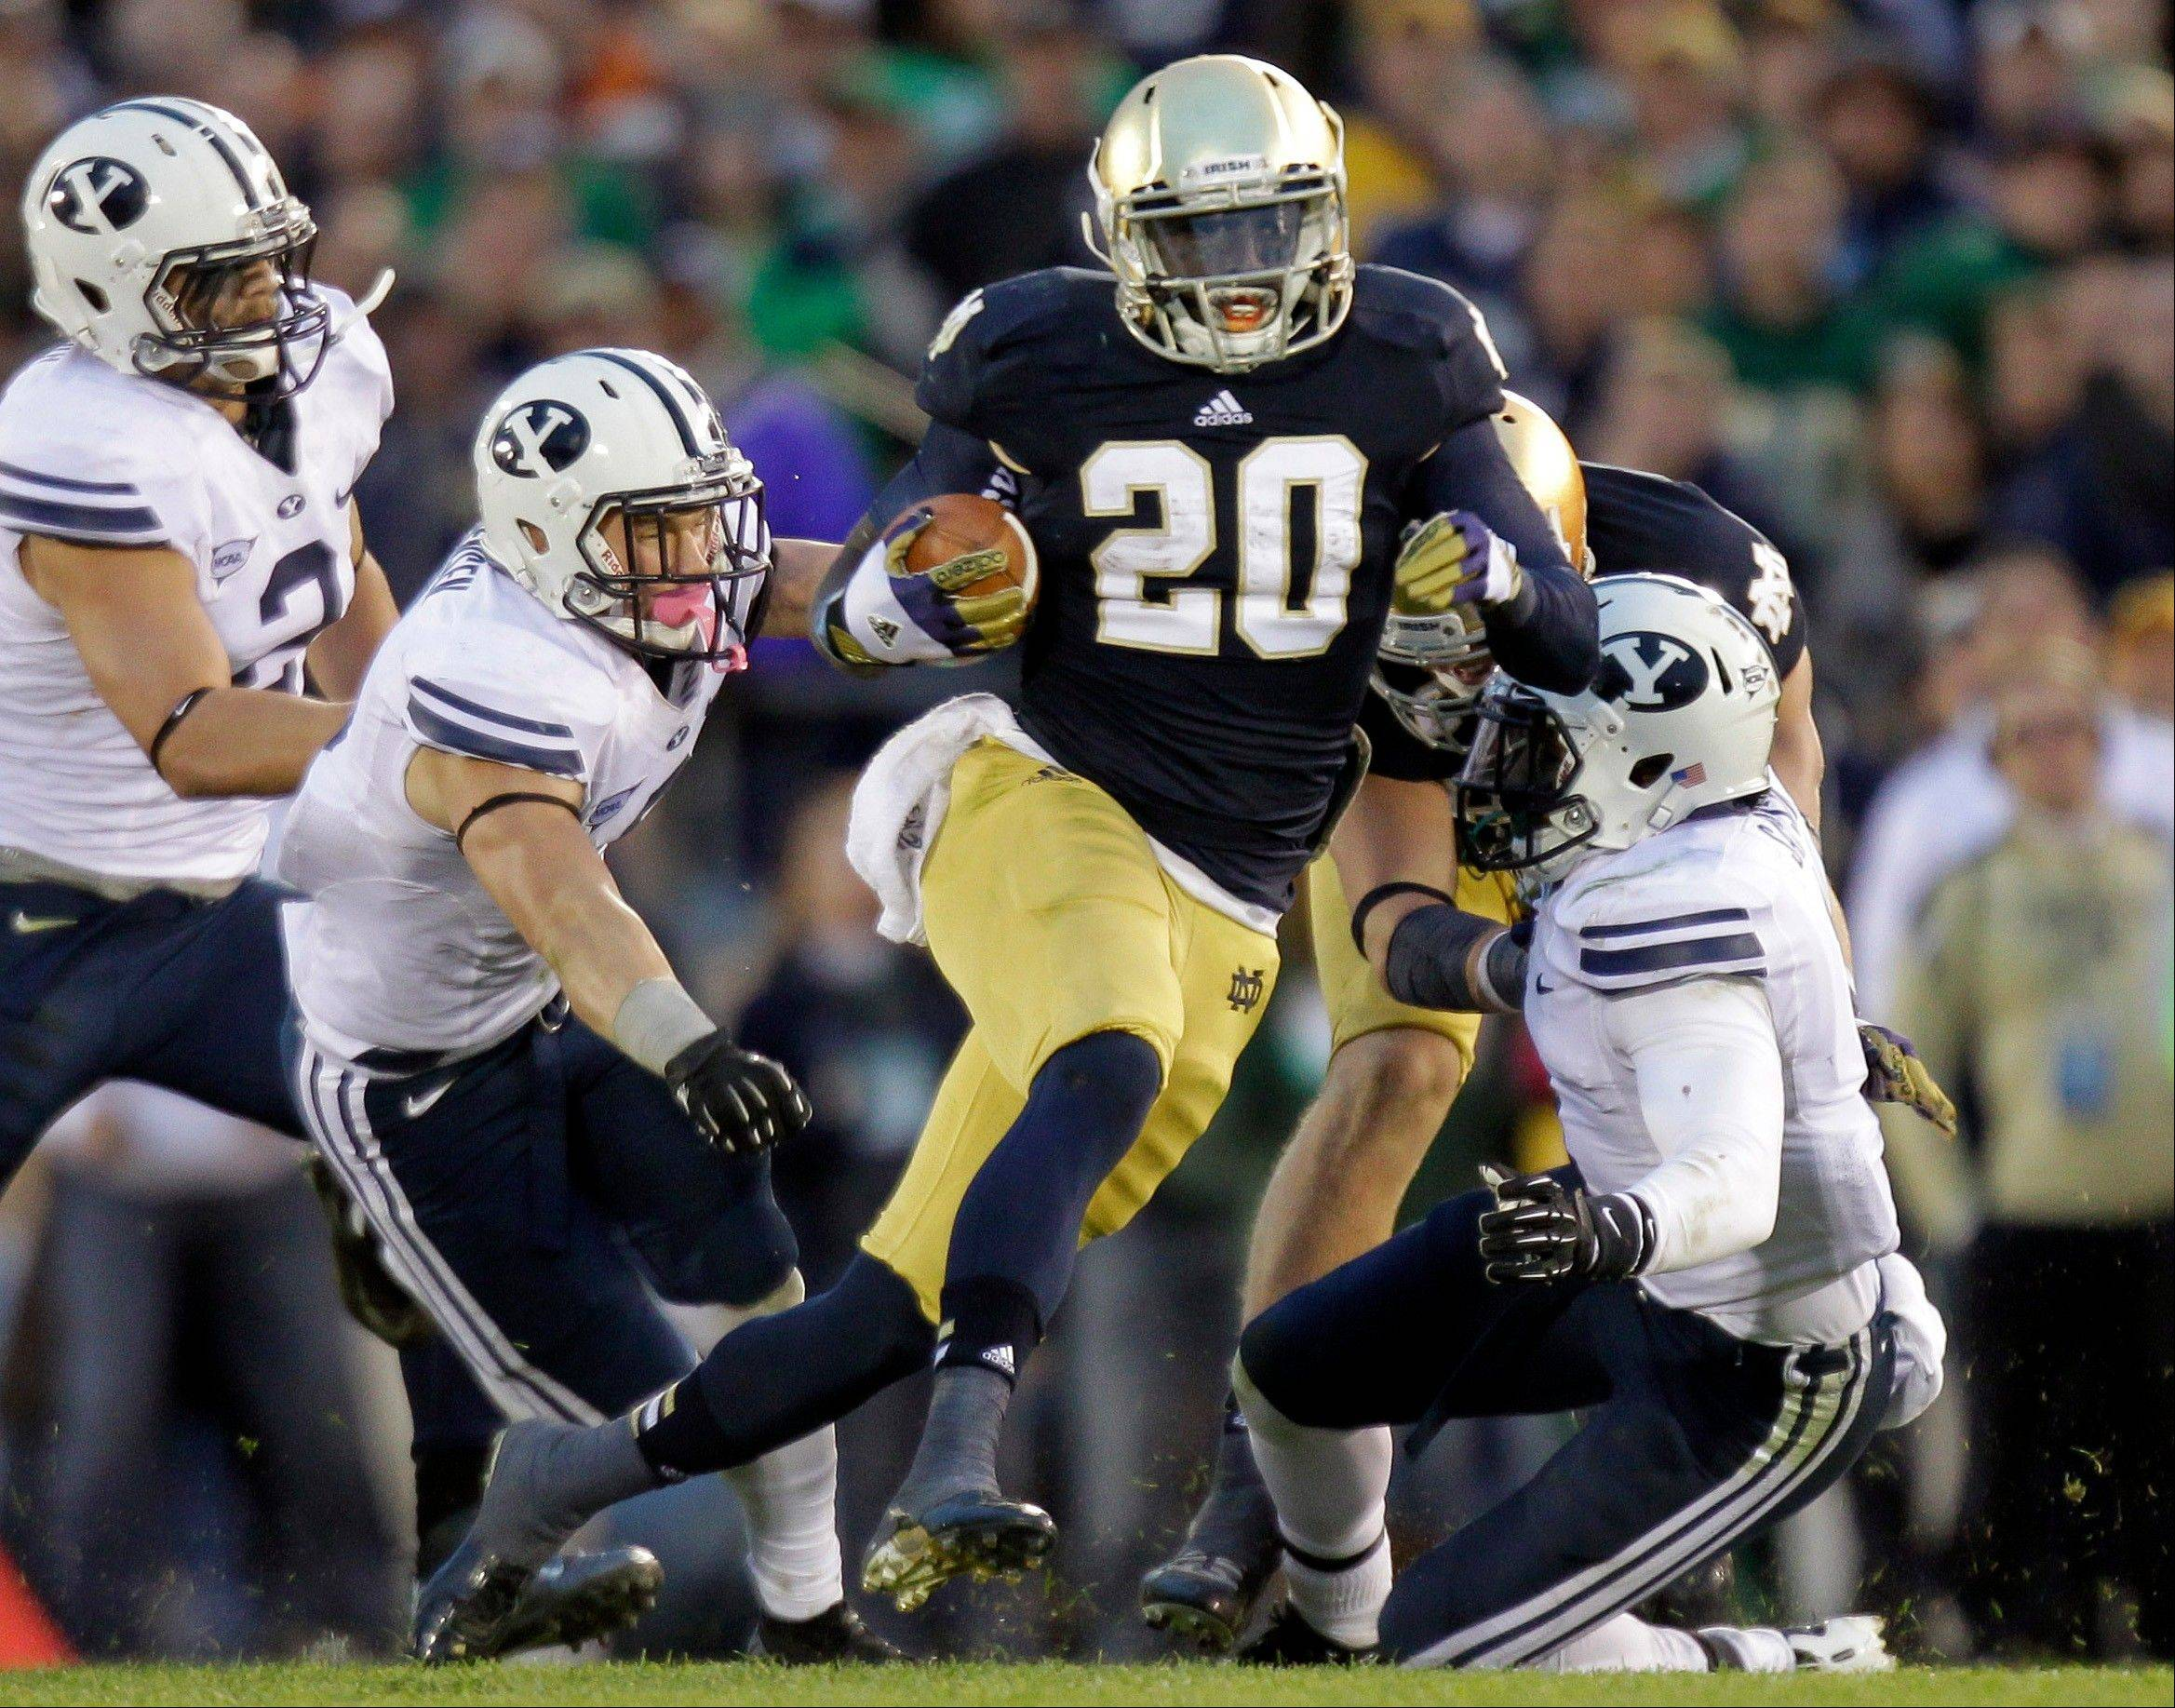 Notre Dame running back Cierre Wood, center, cuts between Brigham Young defenders Spencer Hadley, left, Daniel Sorensen, left center, and Joe Sampson. With the national championship on the line, two throwback offenses will slug it out. No. 1 Notre Dame and No. 2 Alabama rely heavi